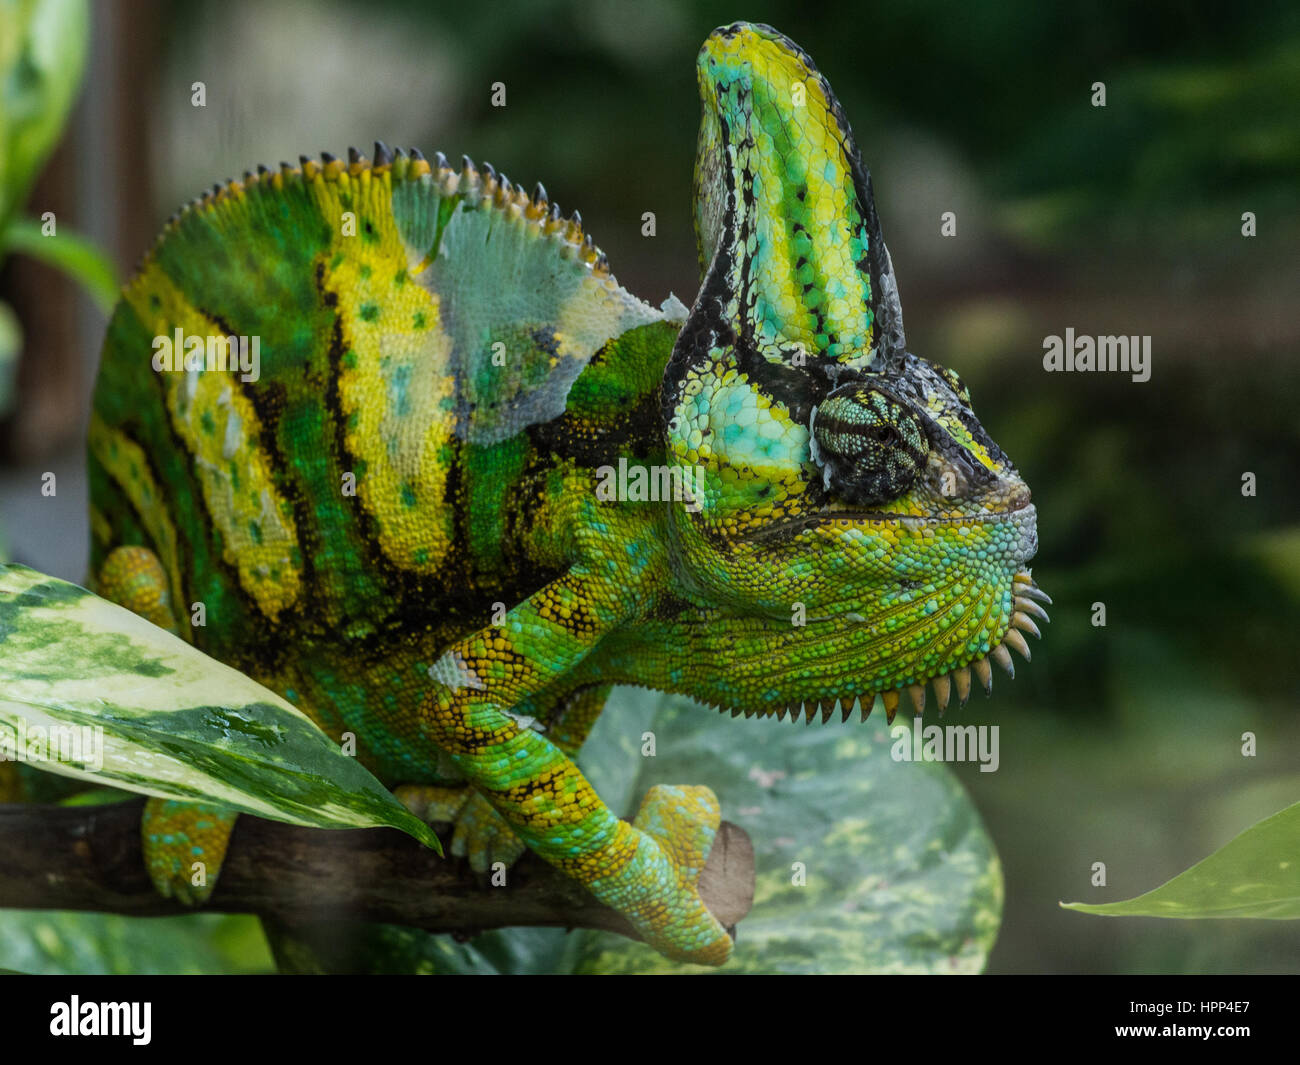 big chameleon emerges from the green leaves of a tree, portrait Chameleon lizard or chamaeleon (family Chamaeleonidae) - Stock Image